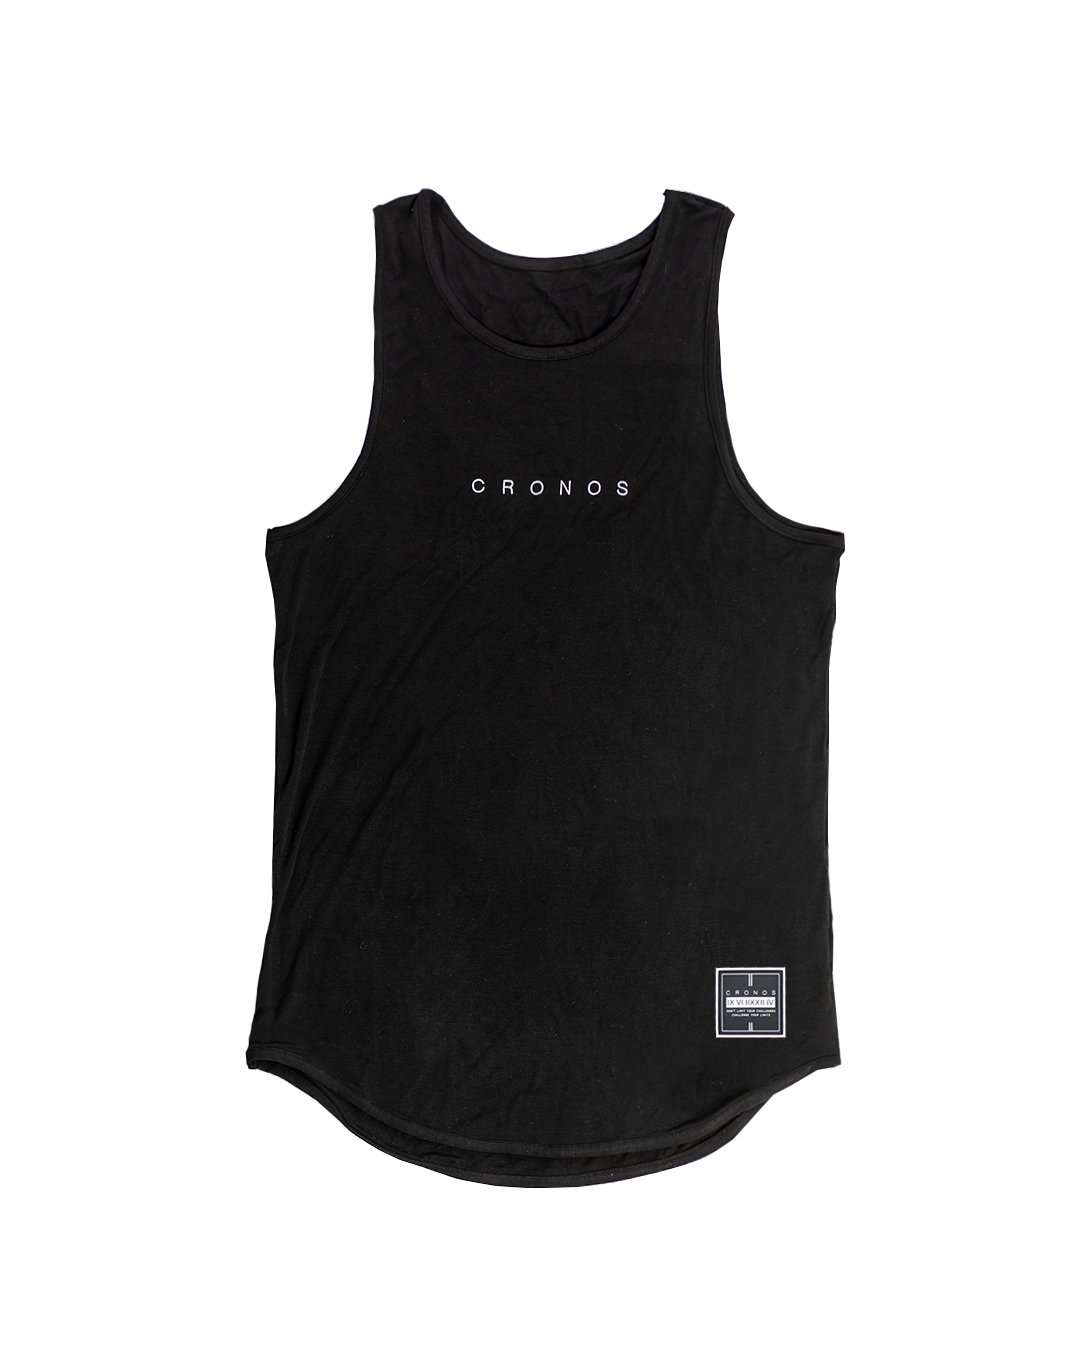 <img class='new_mark_img1' src='https://img.shop-pro.jp/img/new/icons1.gif' style='border:none;display:inline;margin:0px;padding:0px;width:auto;' />CRONOS OUTLAST TANK TOP 【BLACK】